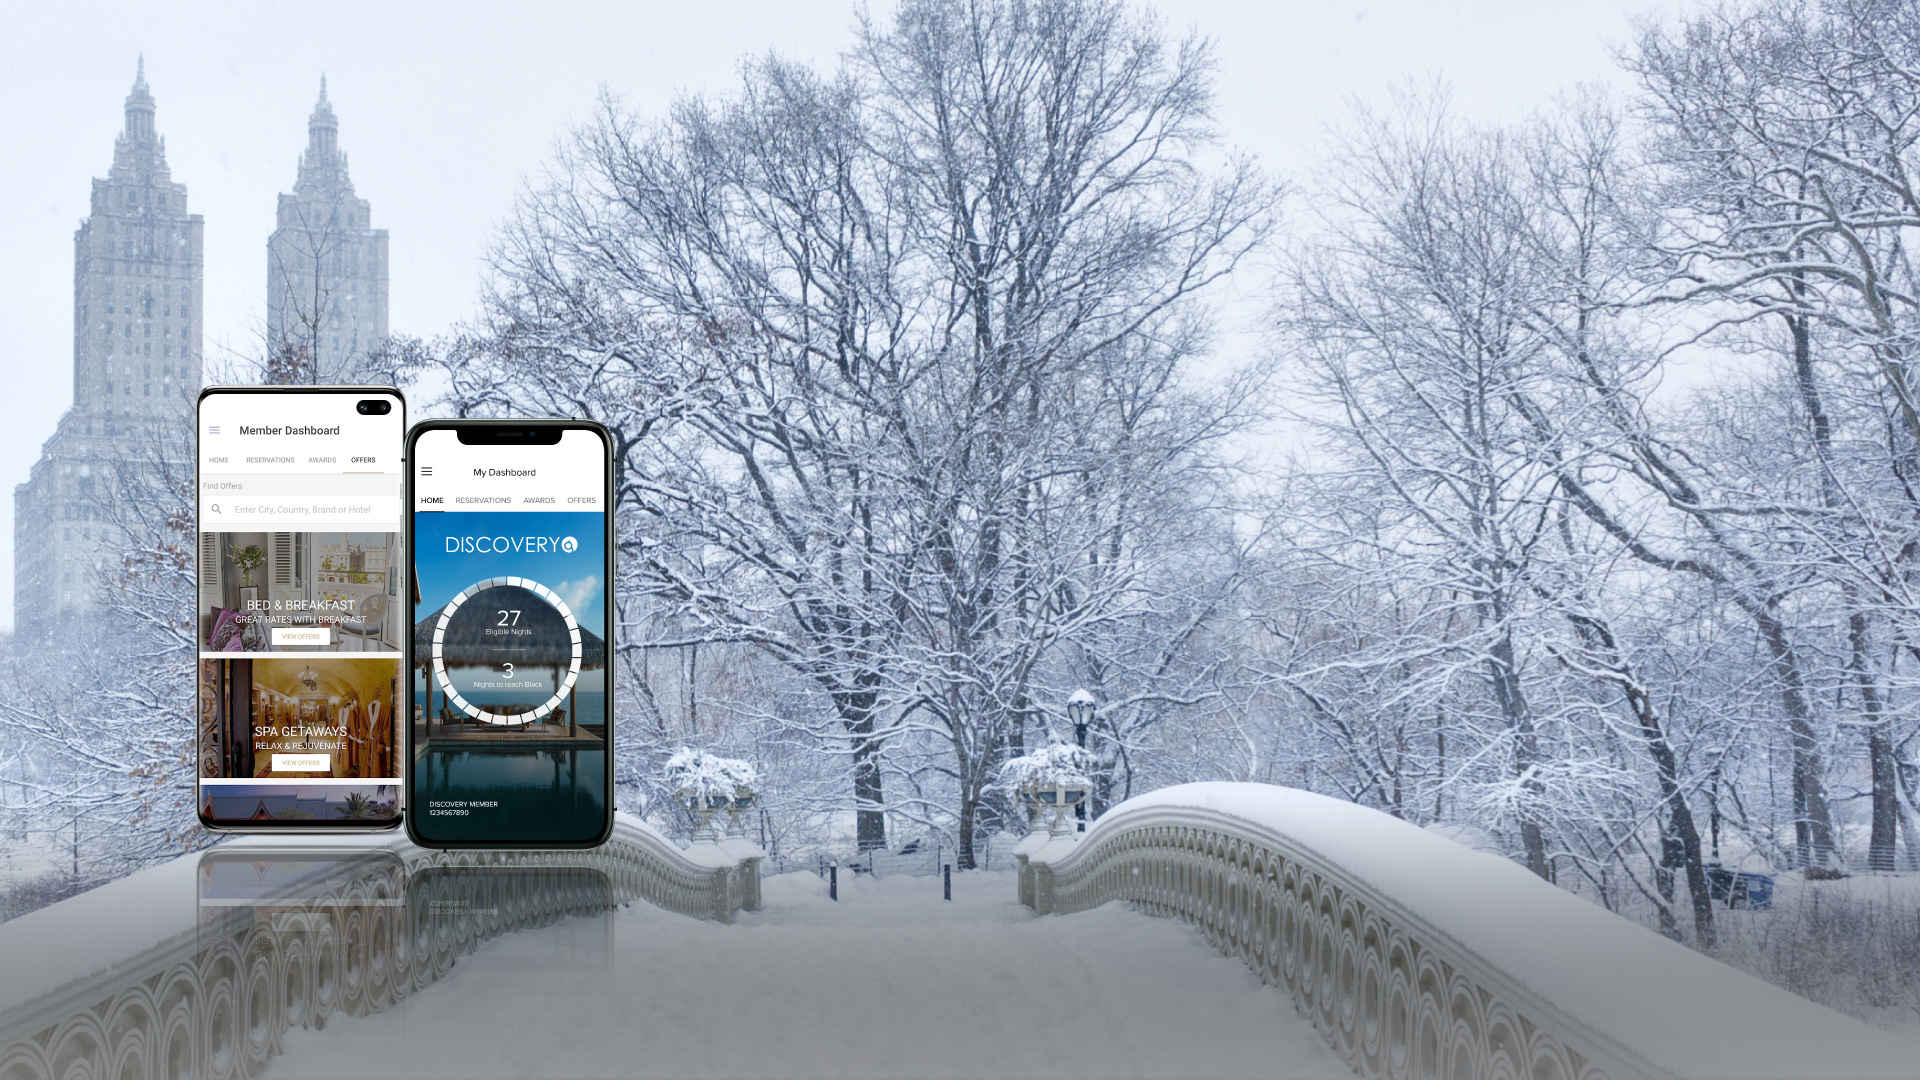 Discovery_Billboard_Mobile_App